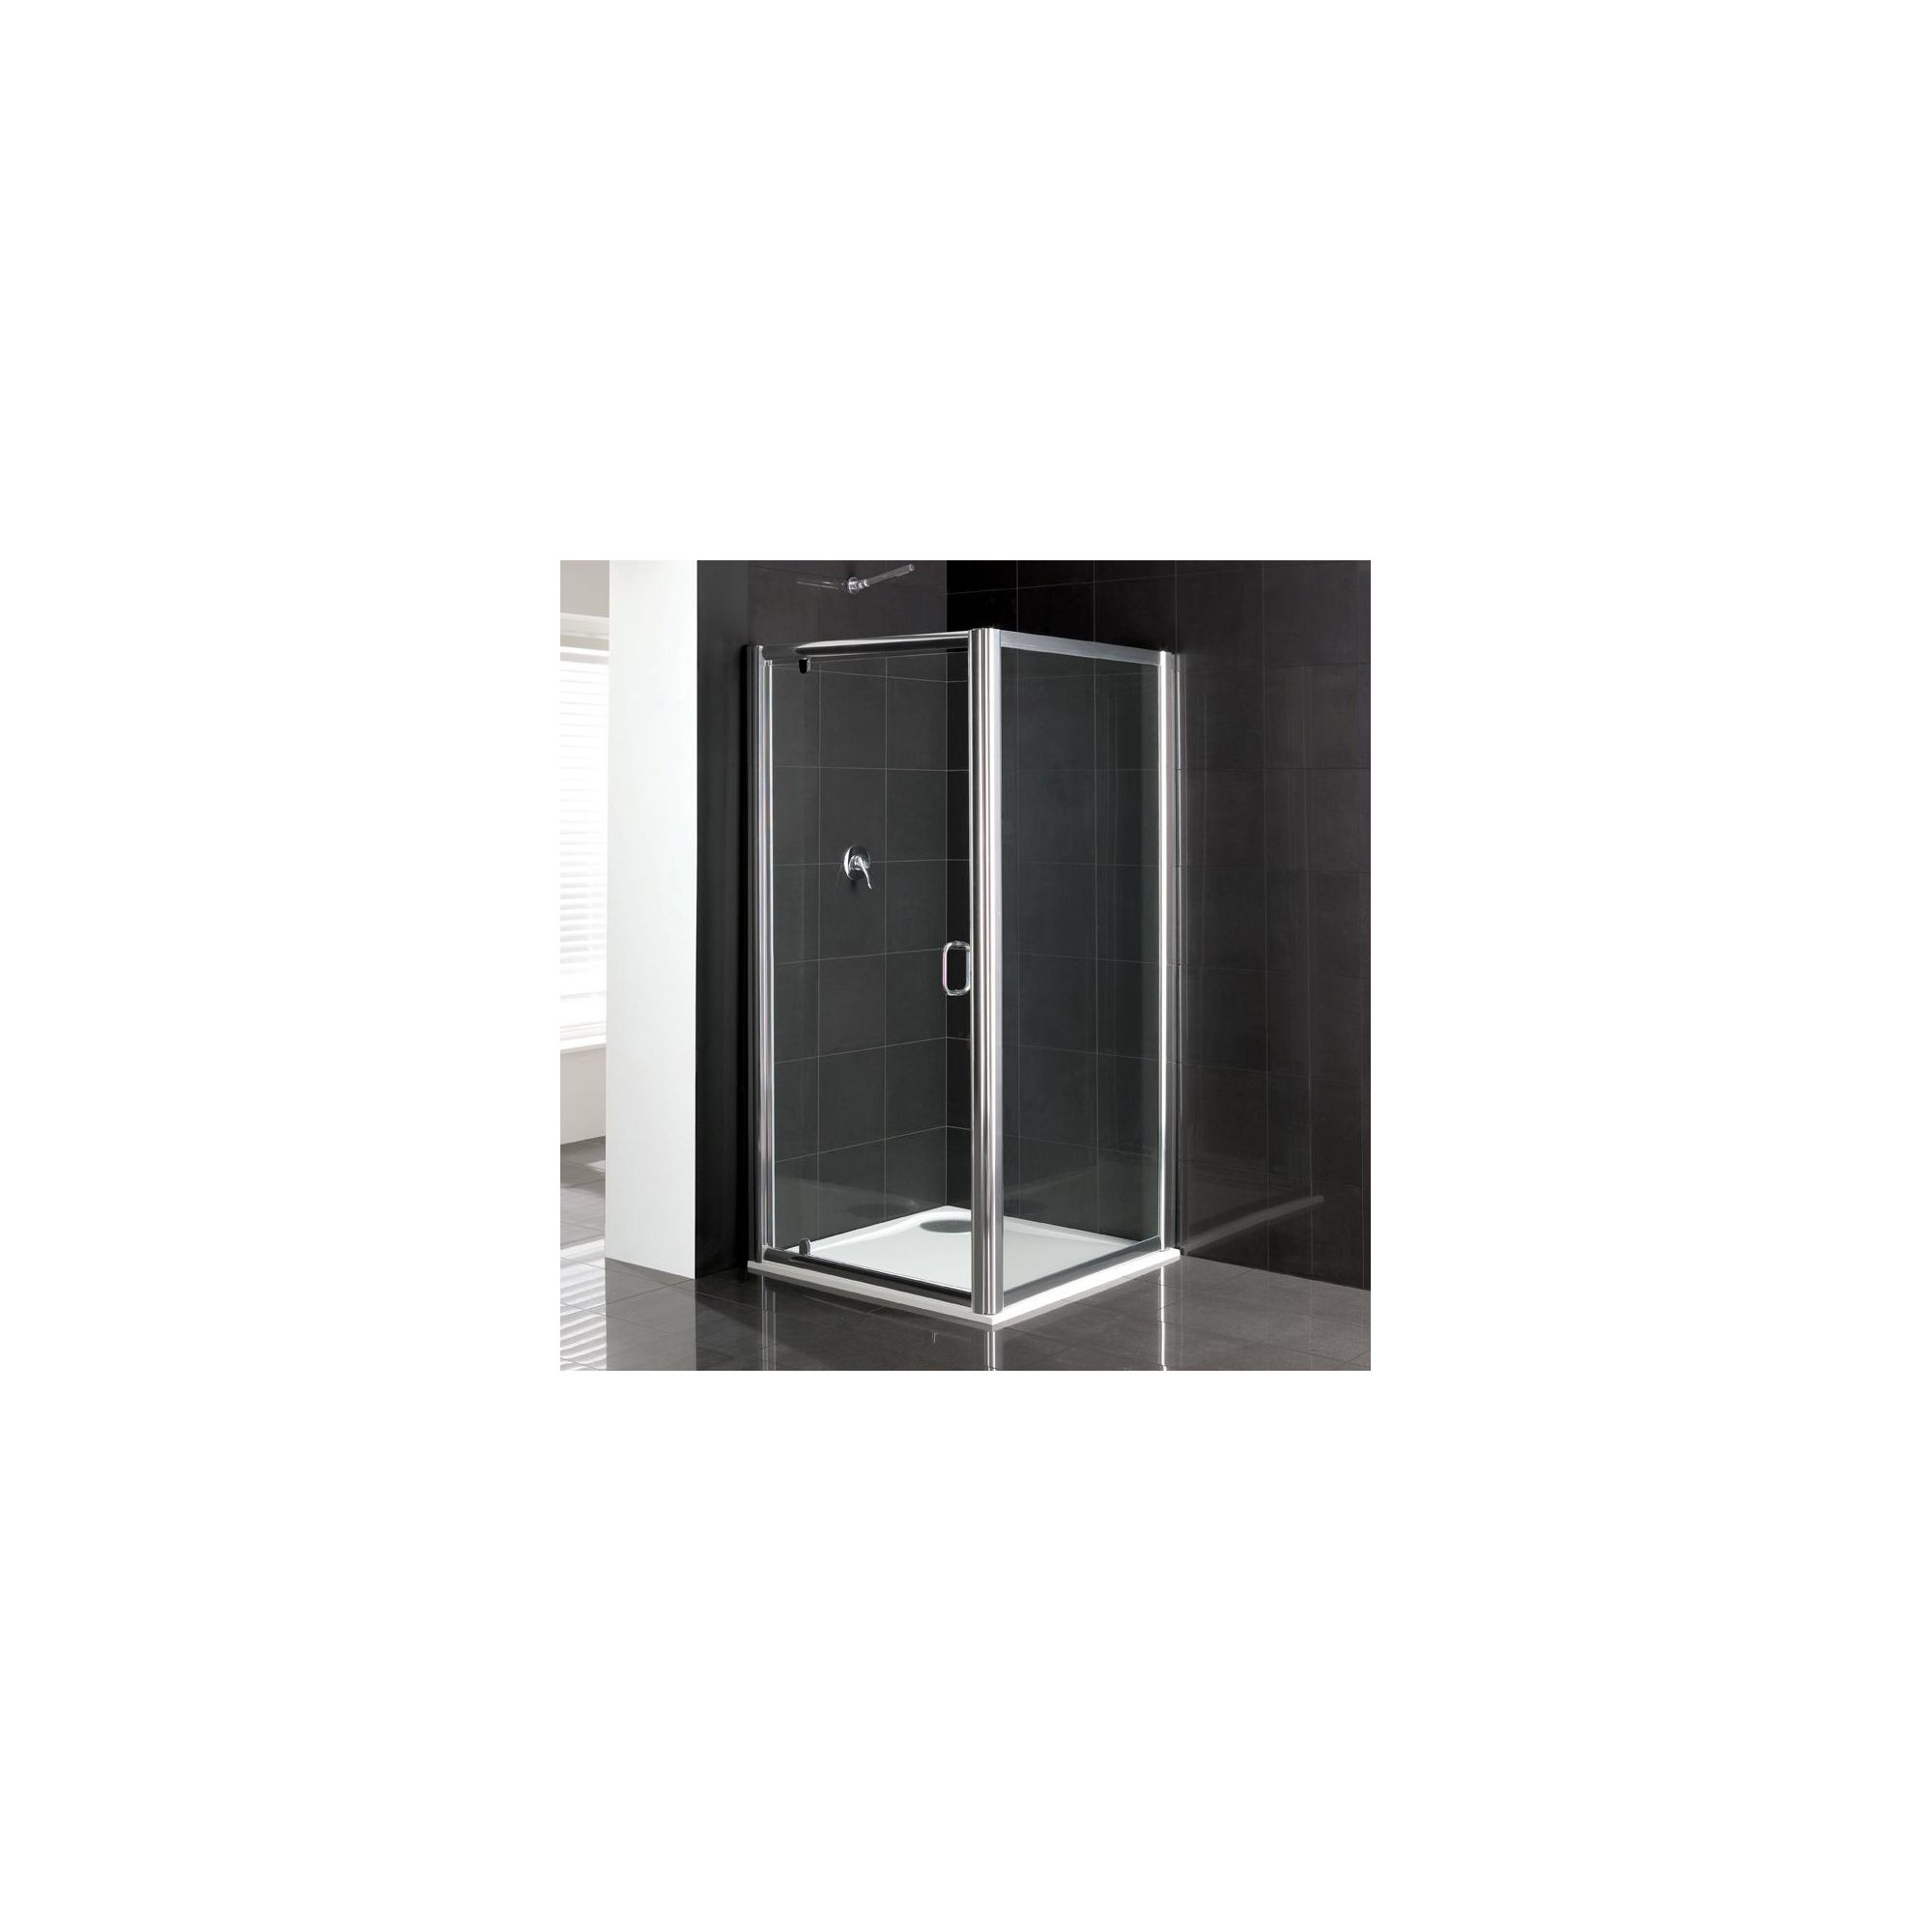 Duchy Elite Silver Pivot Door Shower Enclosure, 800mm x 760mm, Standard Tray, 6mm Glass at Tesco Direct